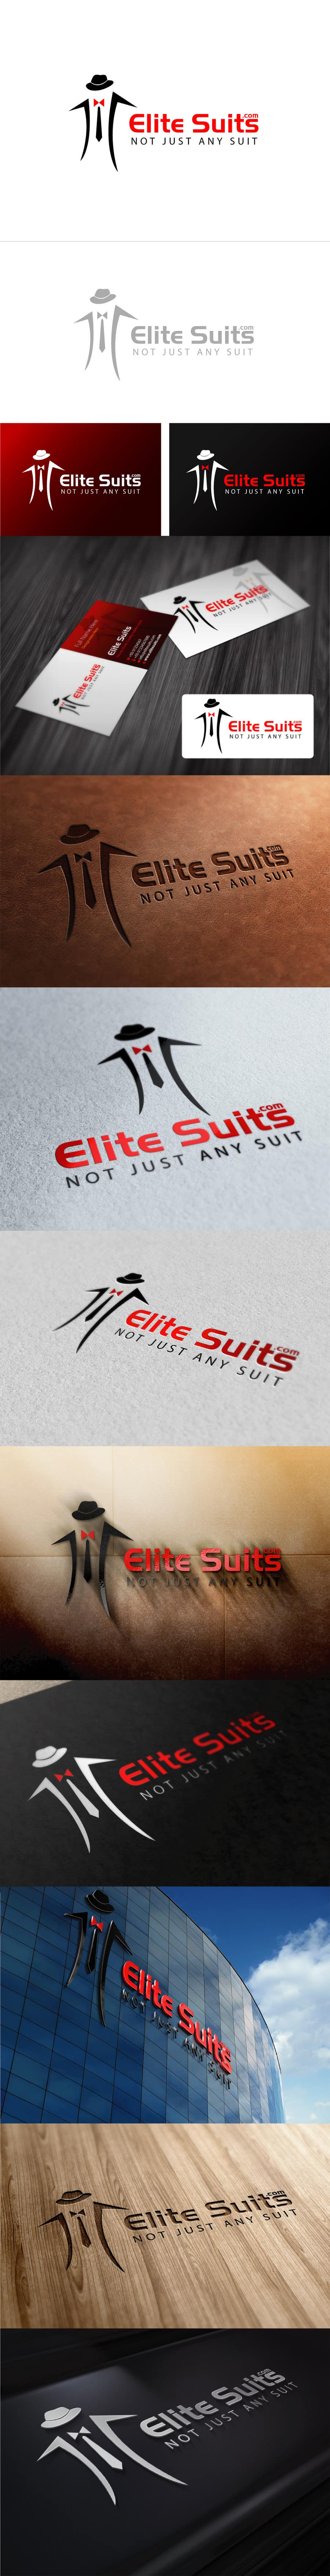 #139 for Design a Logo for an online suit store by ideaz13